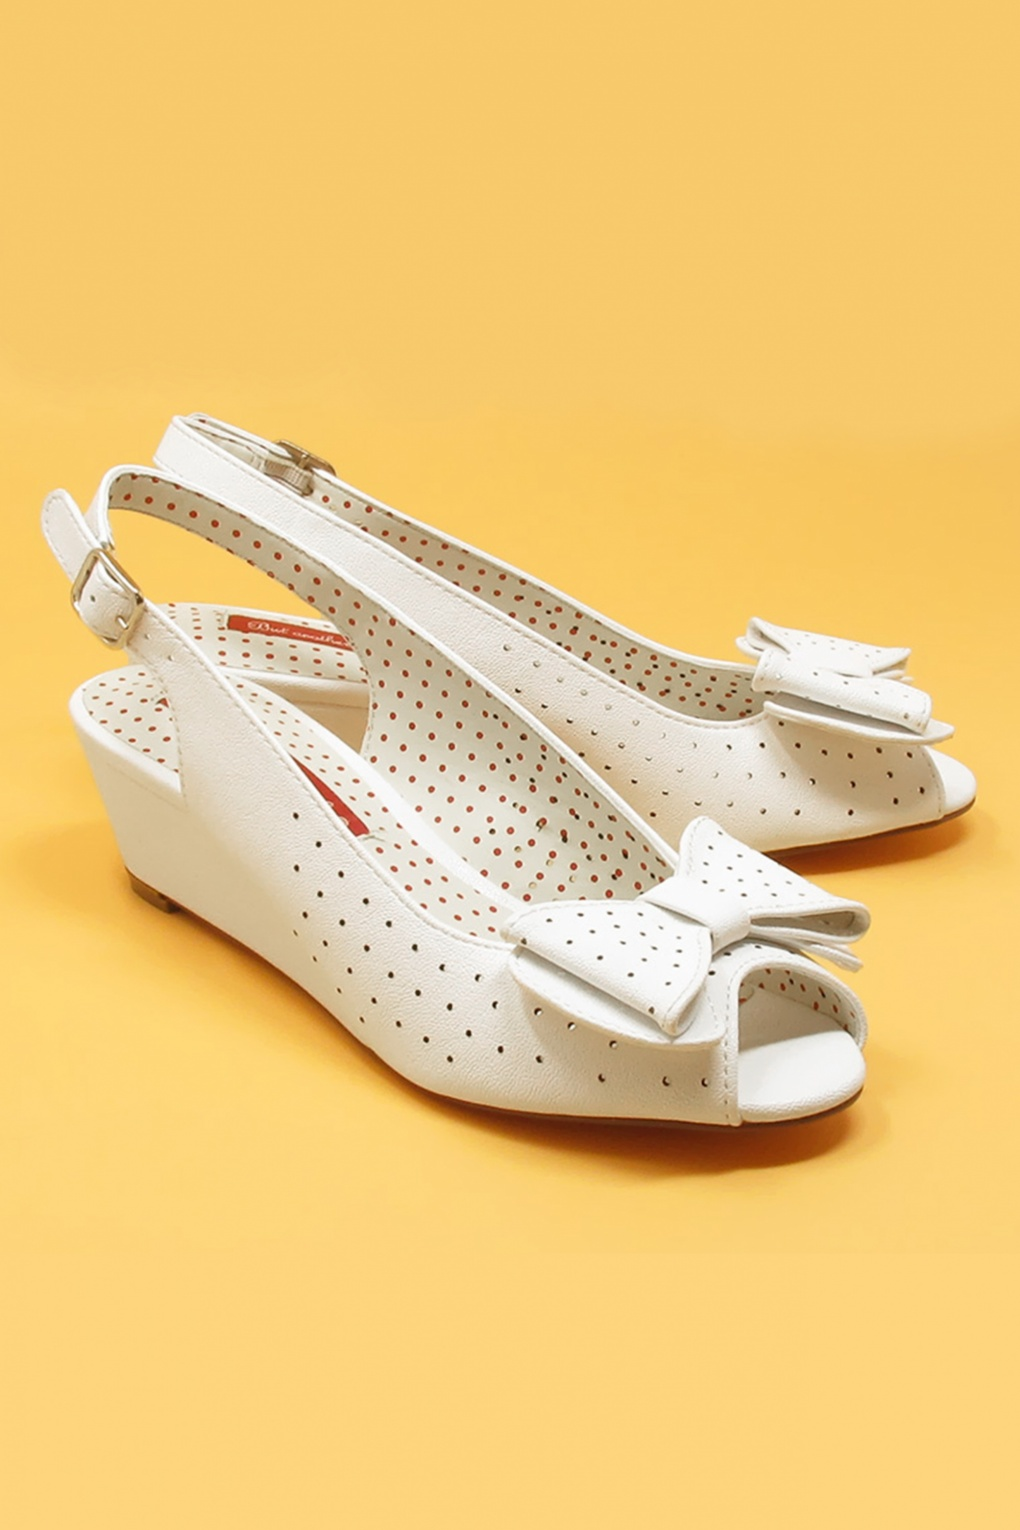 Pin Up Shoes- Heels, Pumps & Flats 50s Jasmine Wedge Peeptoes in White £66.43 AT vintagedancer.com